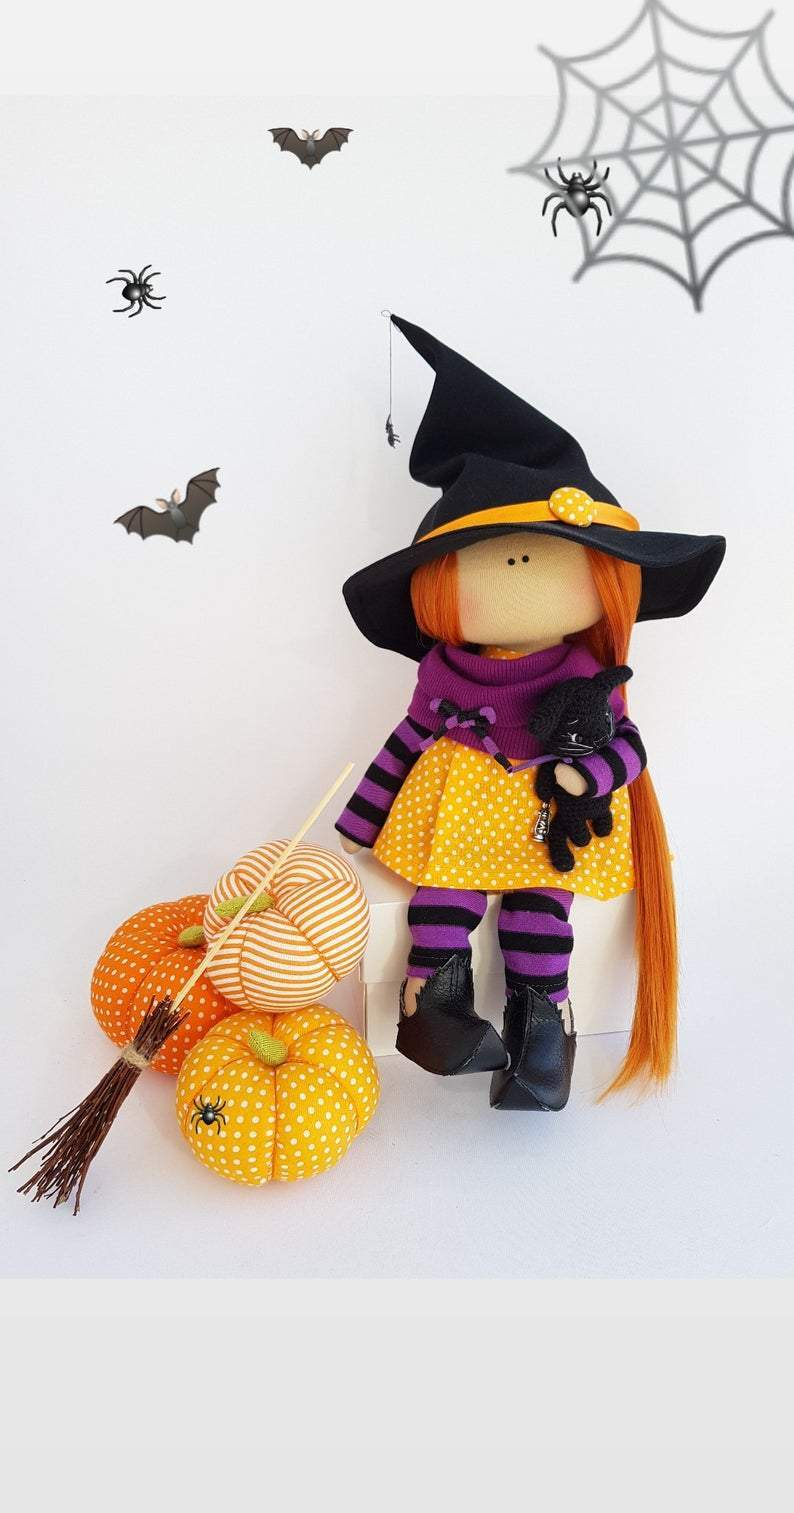 Witch Doll Handmade, Halloween Interior Decor Doll, Tilda Art Doll, Home Decoration Doll, Special Holiday Rag Doll for Nursery